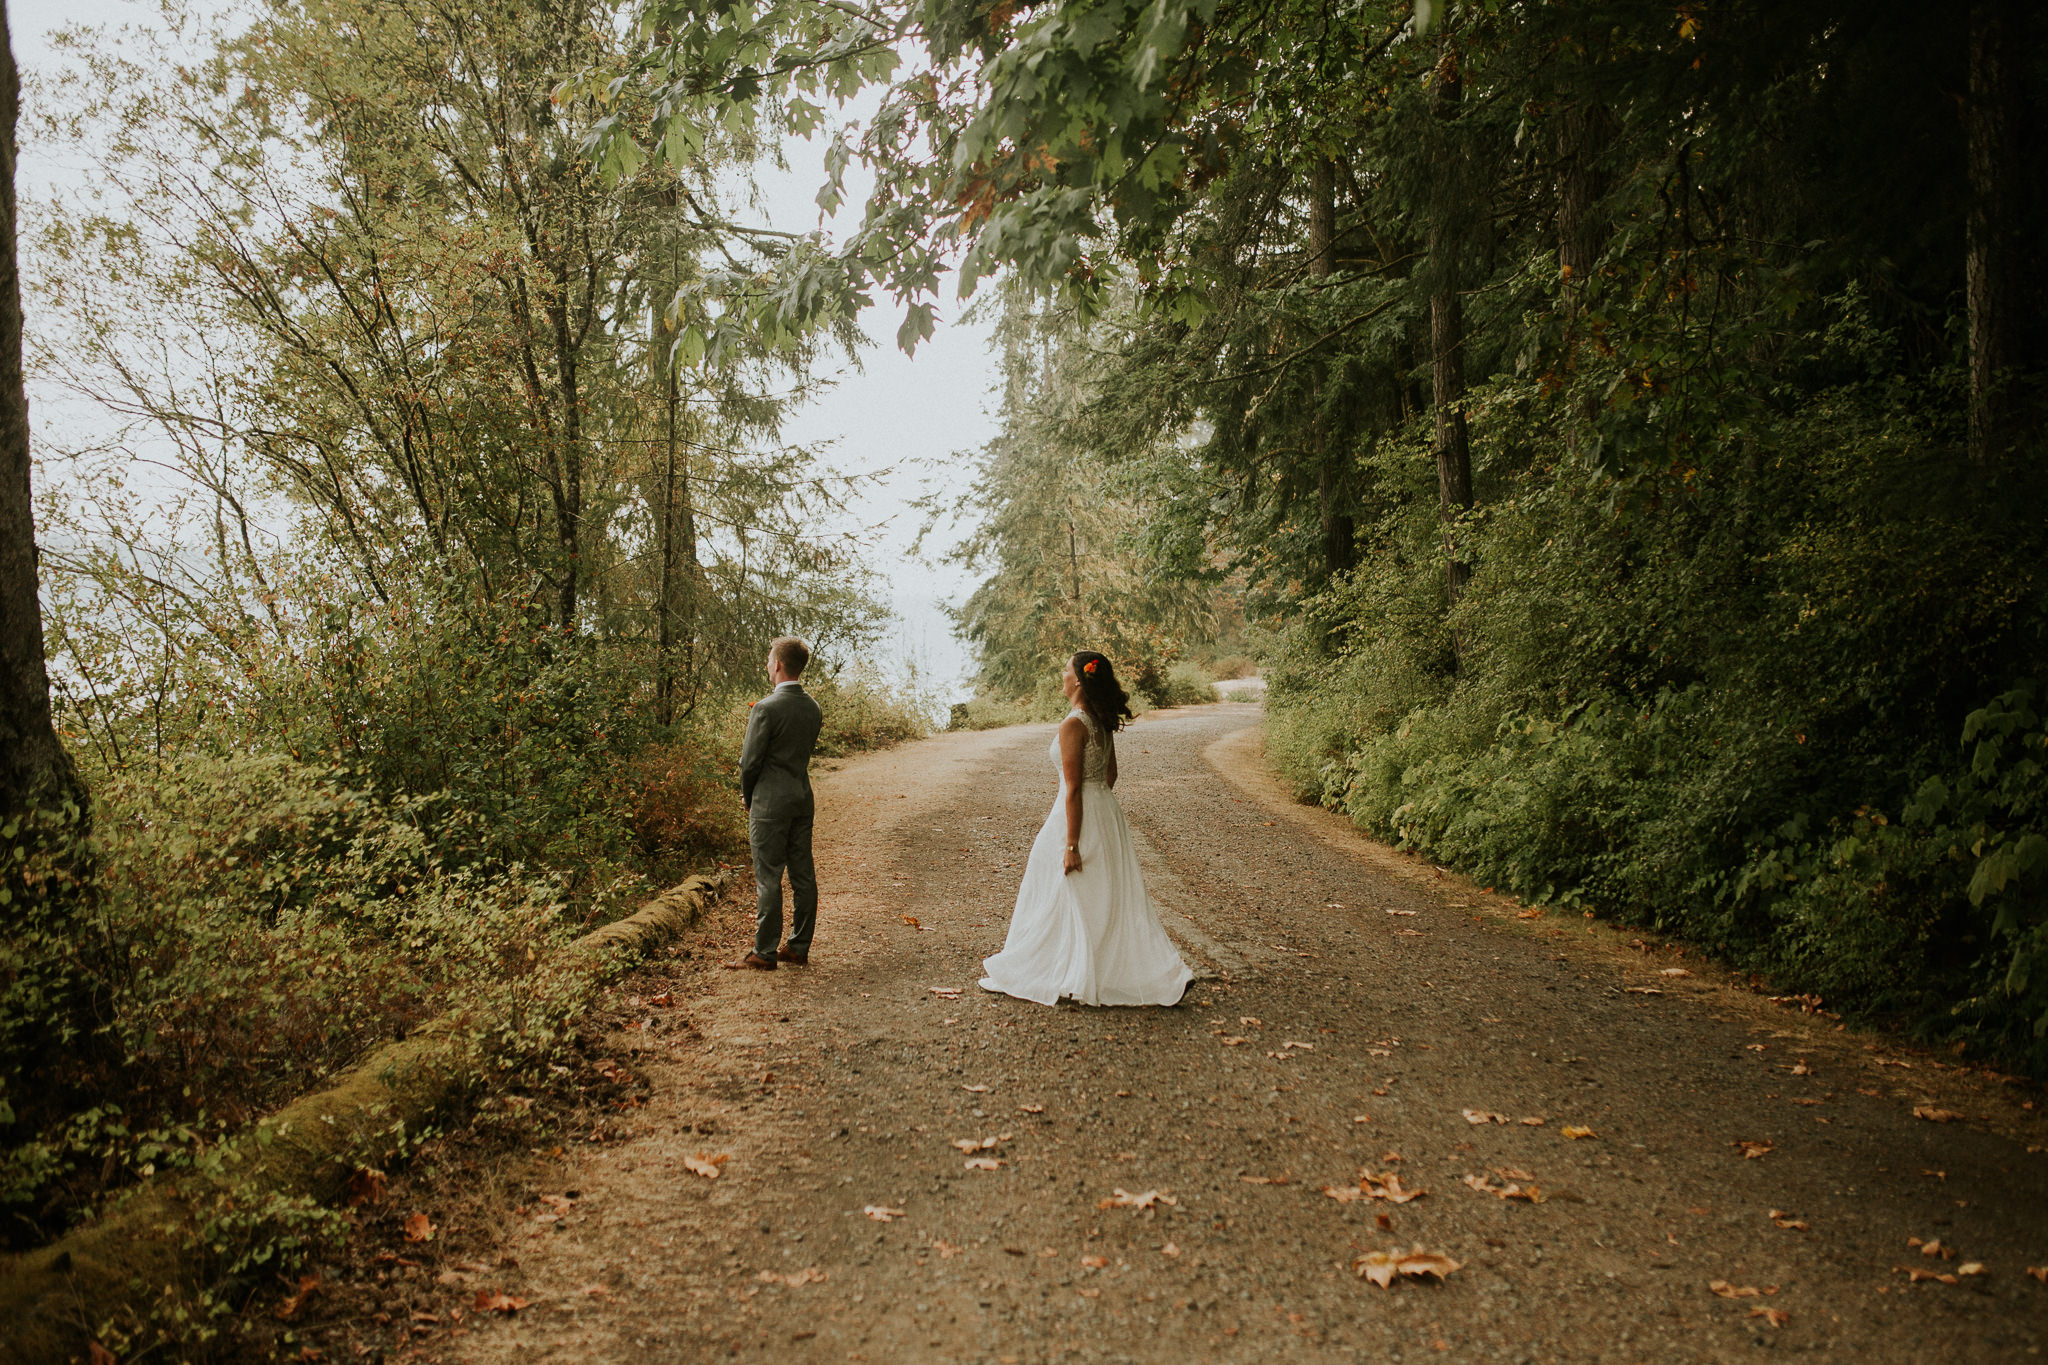 Port-Orchard-Manchester-Park-elopement-Bride-And-Groom-6.jpg